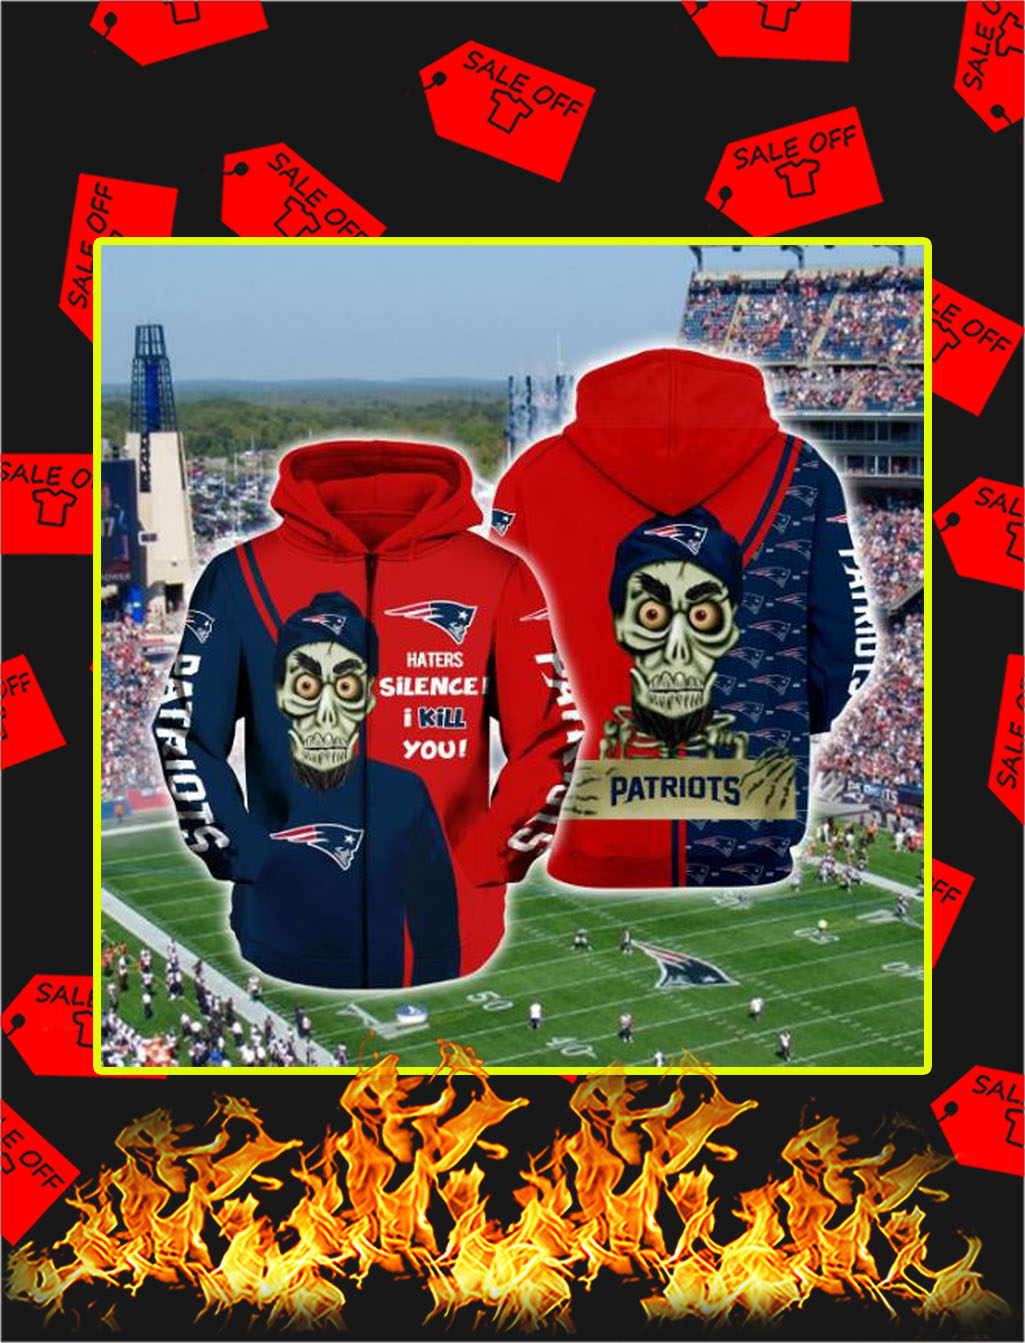 Achmed Patriots Haters Silence I Kill You Full Printing Zip Hoodie